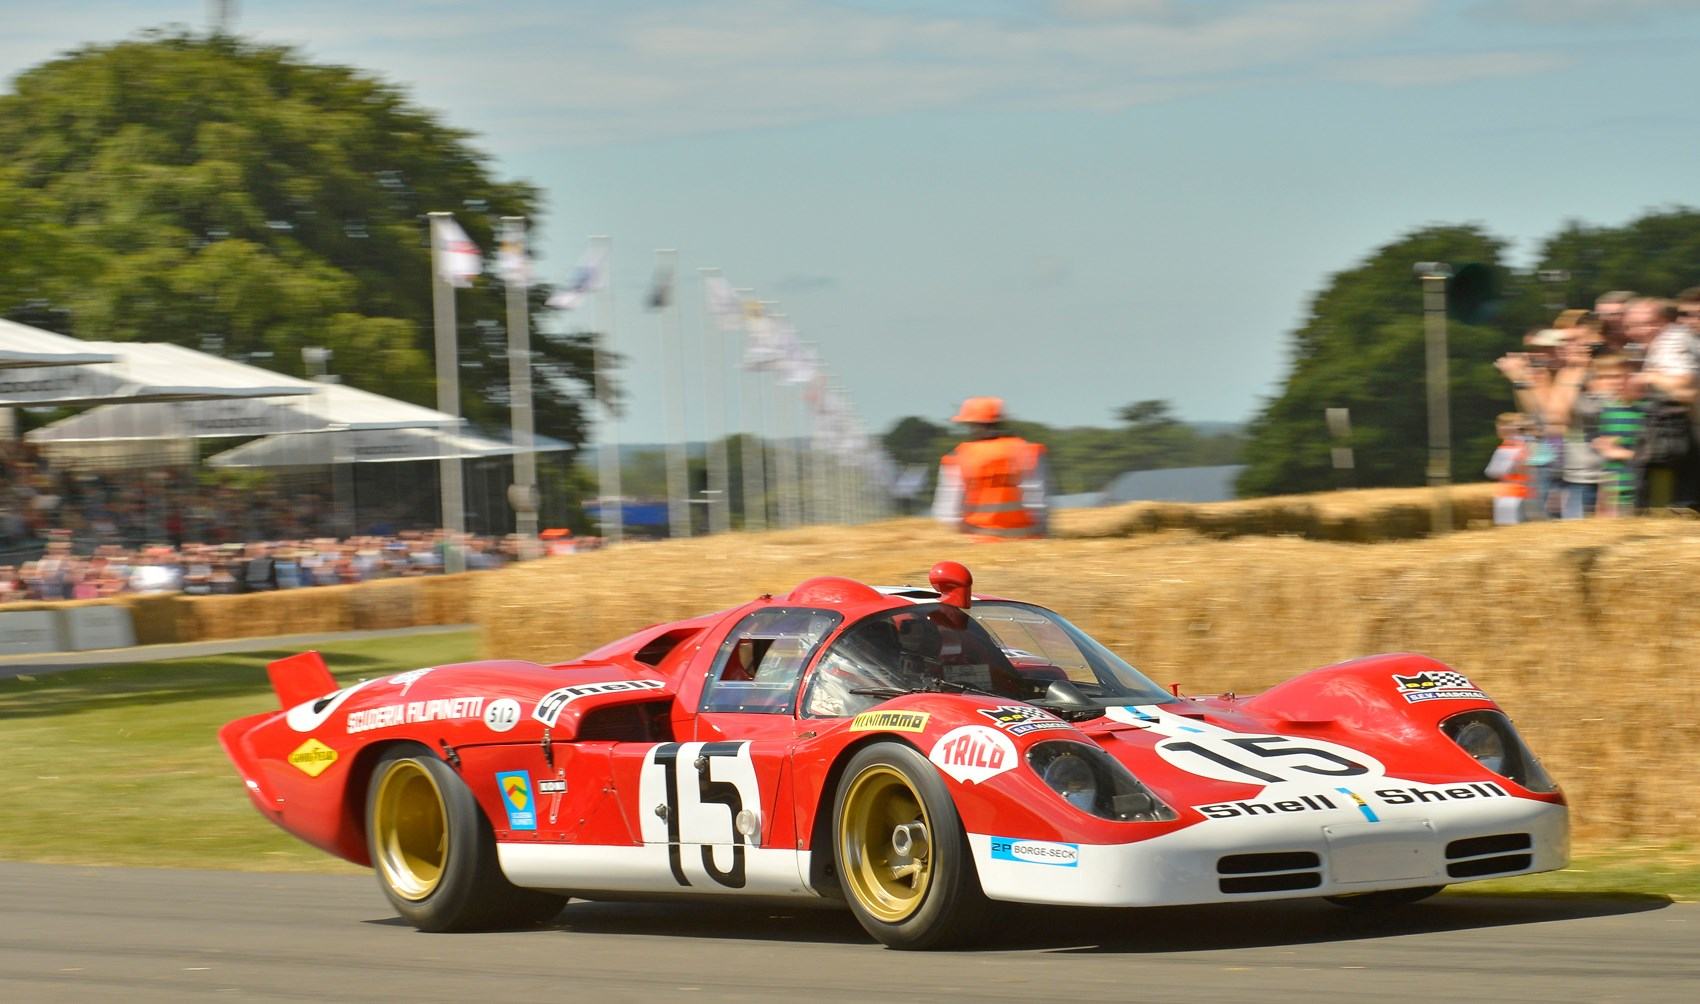 The most fearsome Le Mans cars of all time head to Goodwood in 2016 ...